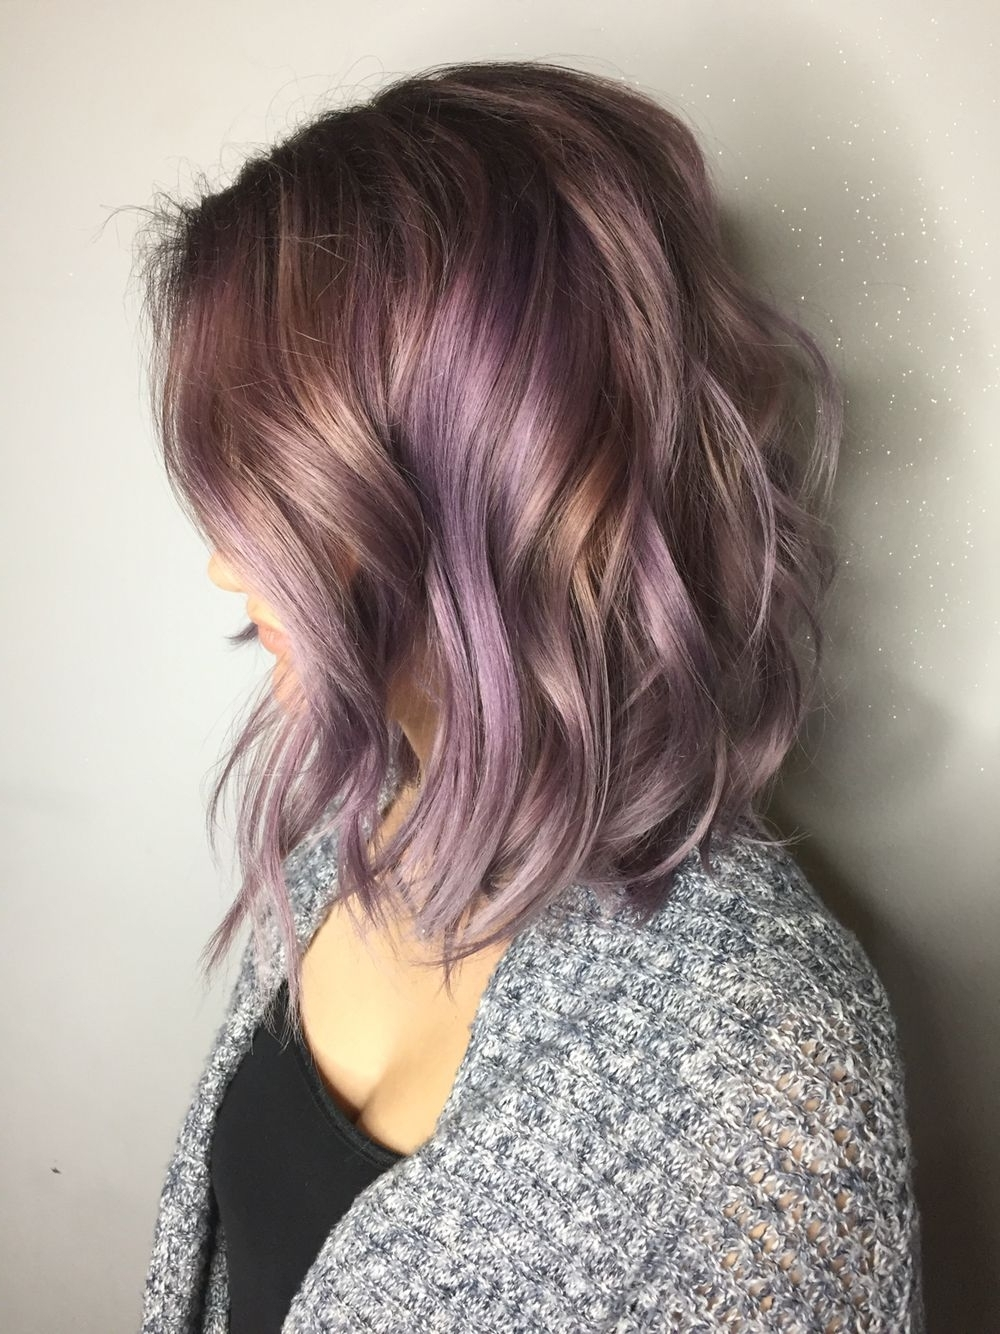 Magical Hair Colors (View 5 of 20)